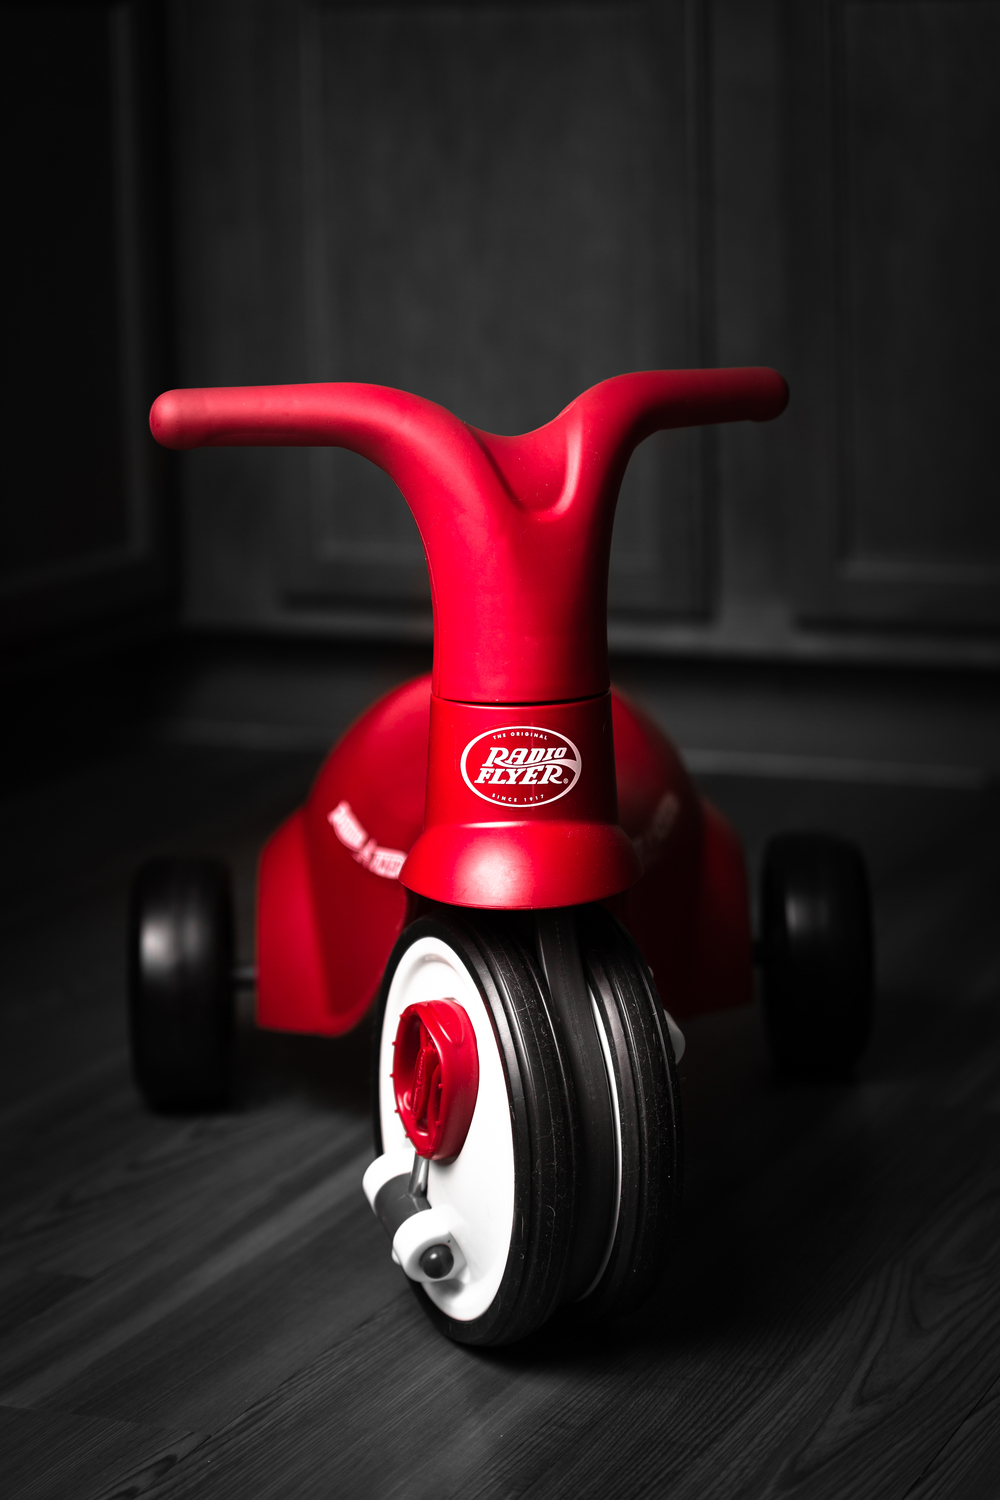 My sons Radio Flyer.  Since he is not riding it, I will photograph it